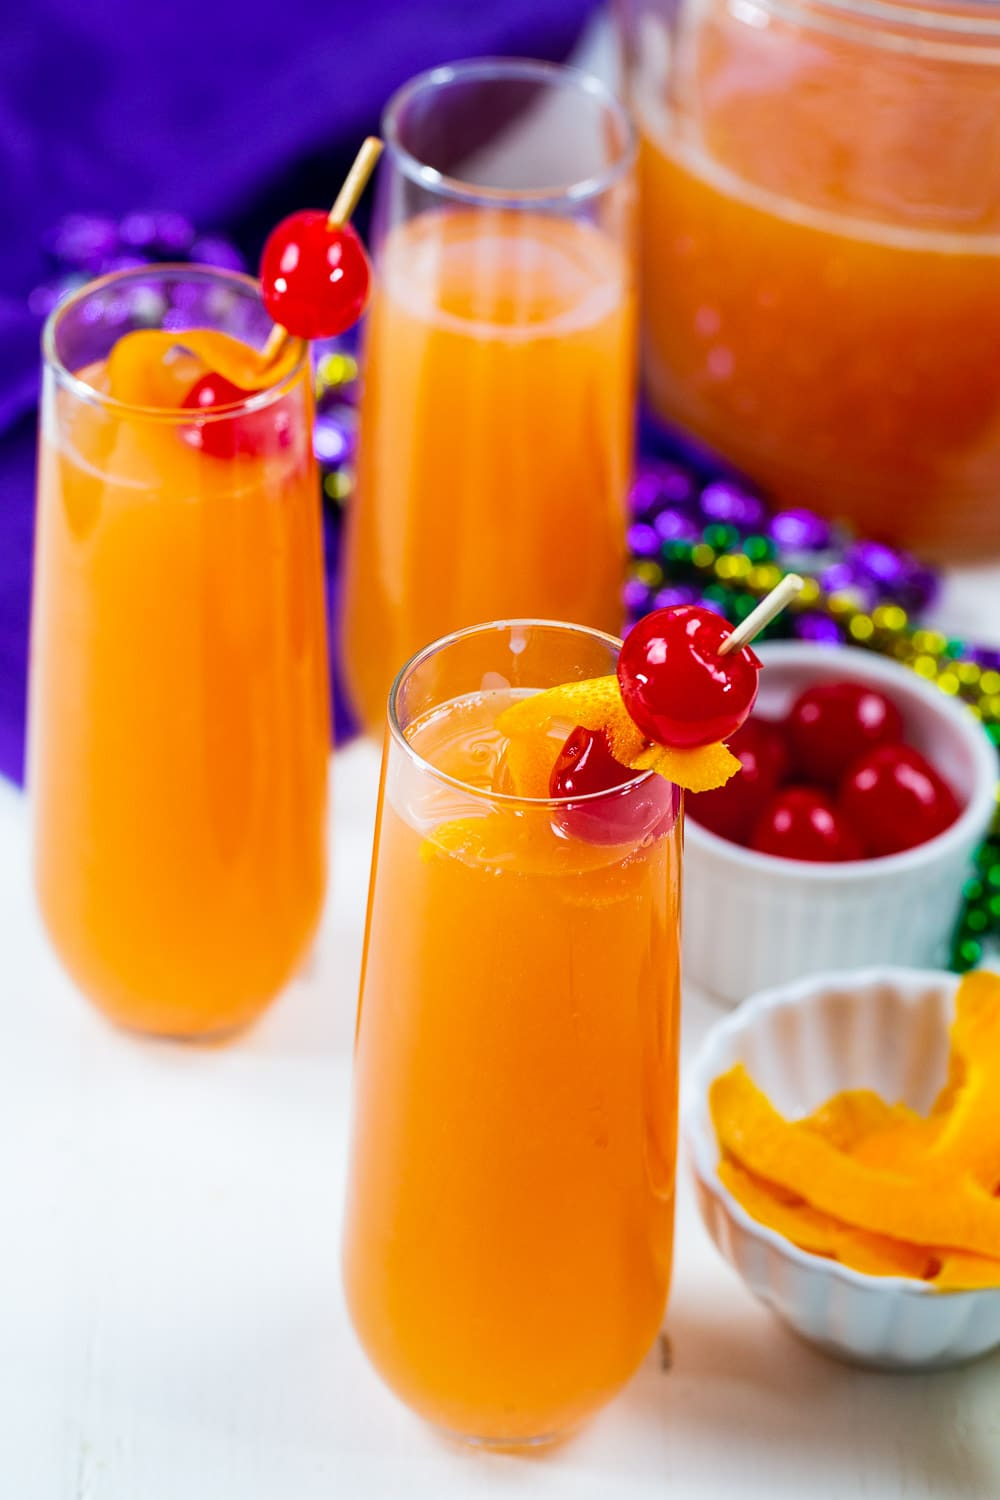 Mimosas in glasses surrounded by Mardi Gras beads.